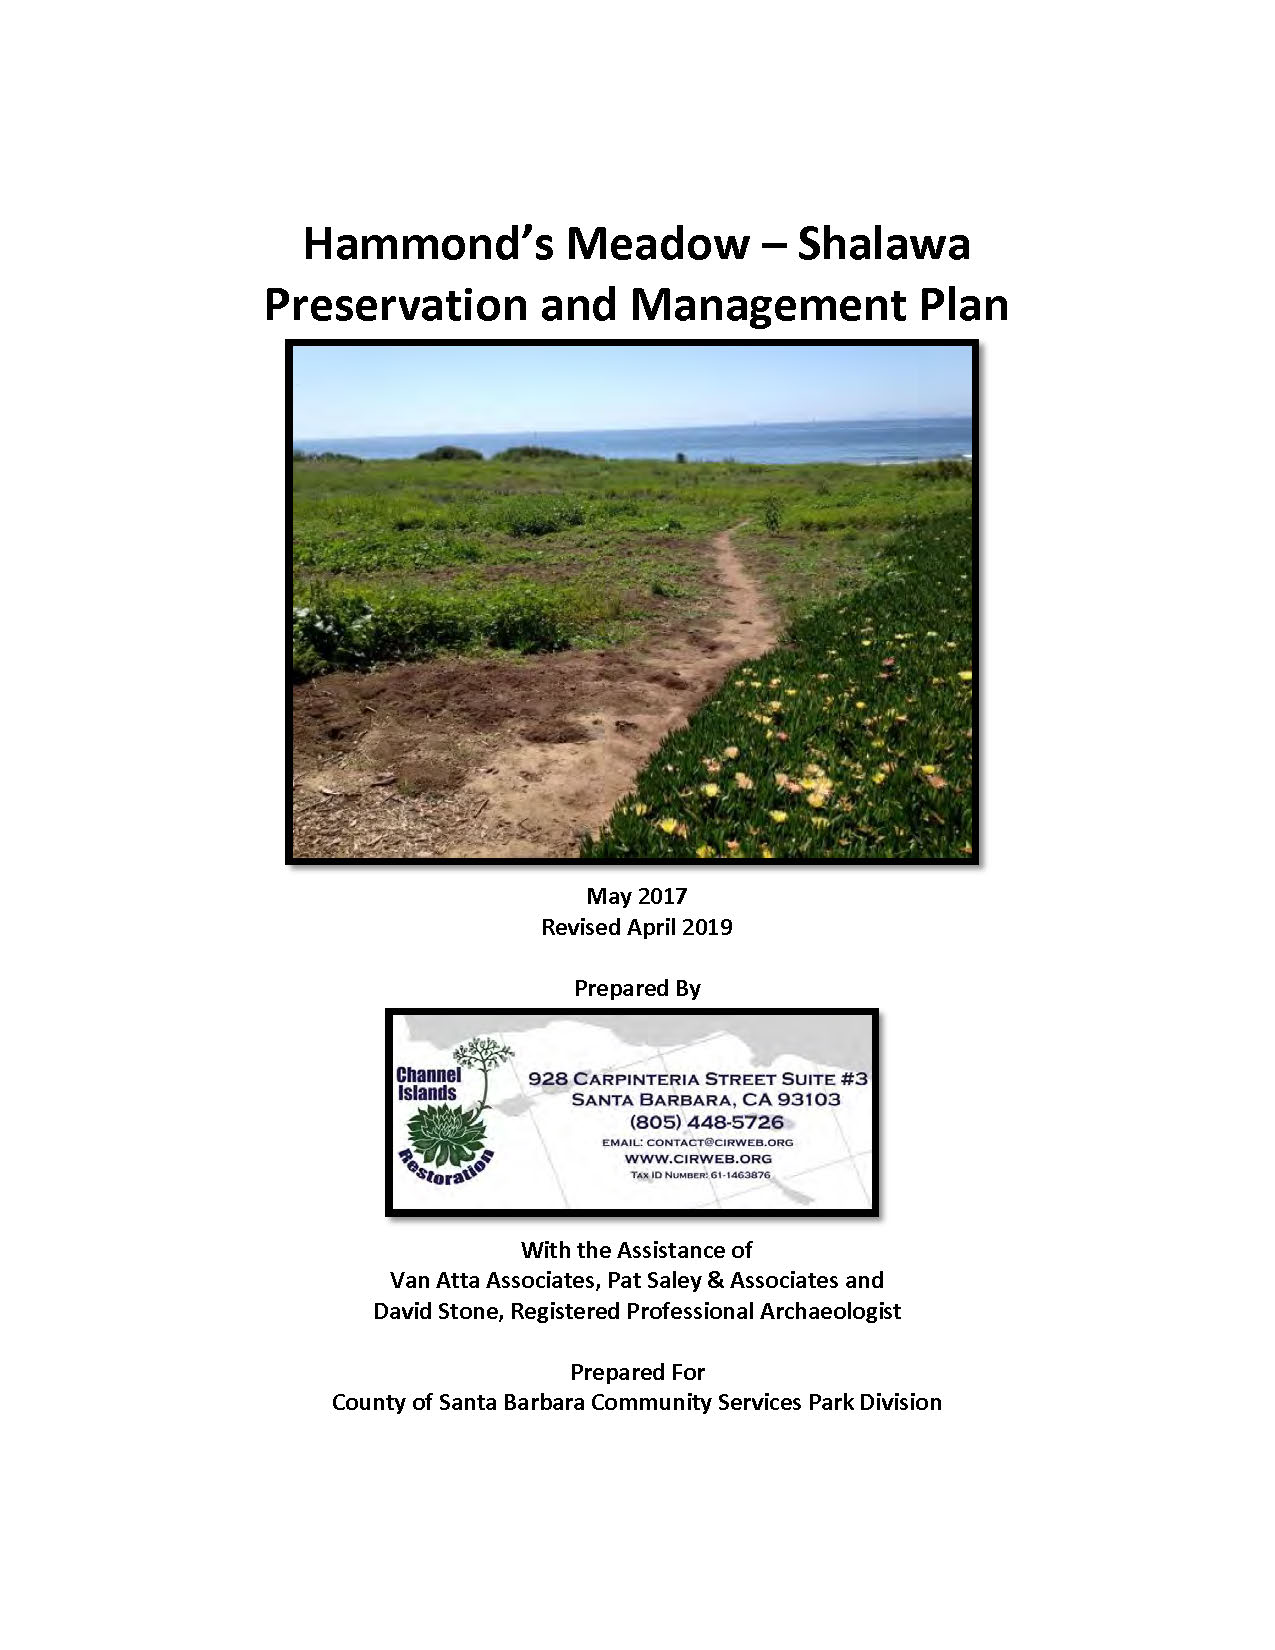 Hammond's Meadow Preservation Plan 2019_April 1_Page_01.jpg